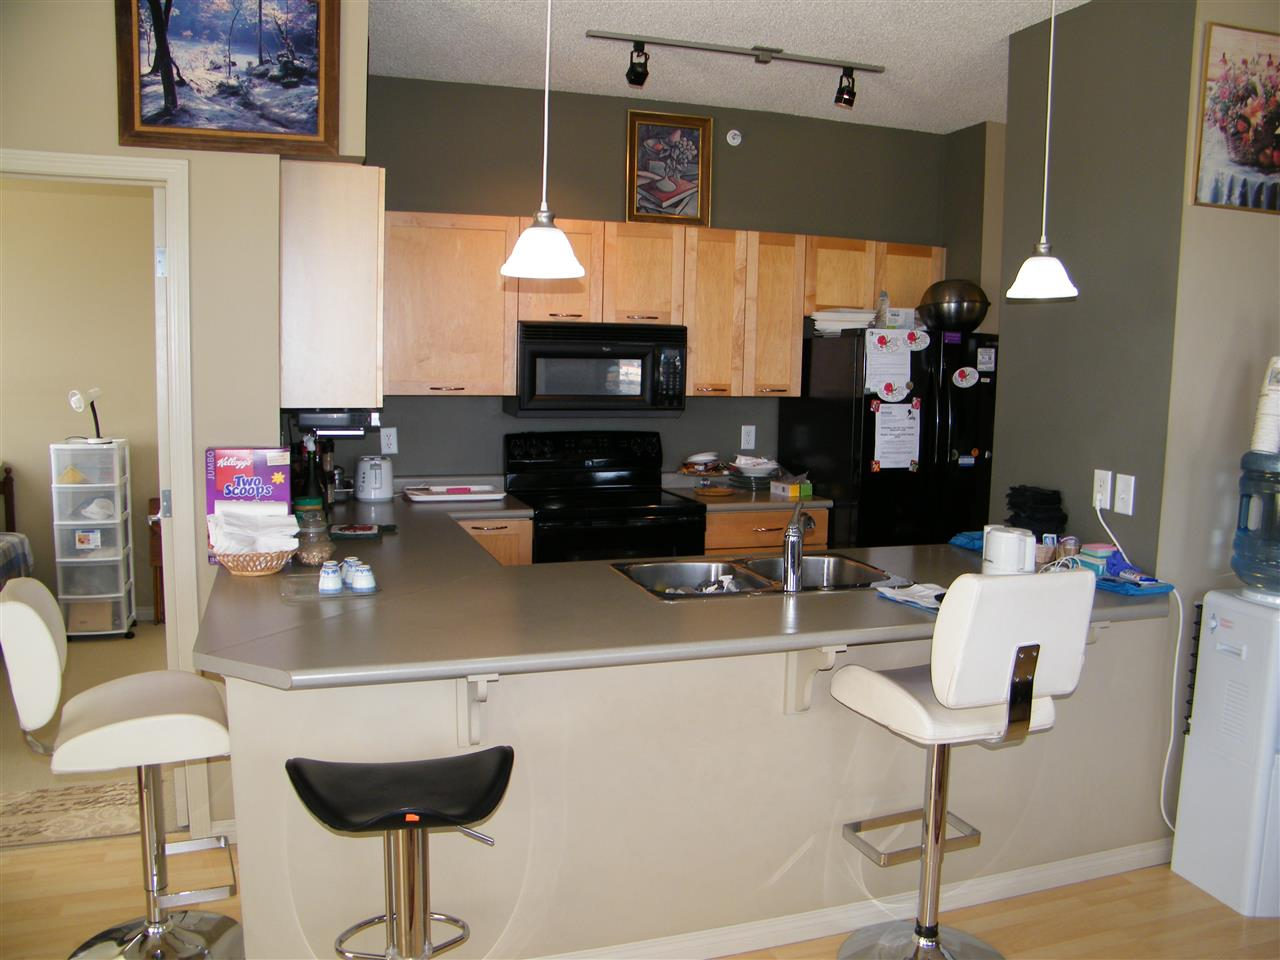 Photo 13: 2-615 4245 139 Avenue in Edmonton: Zone 35 Condo for sale : MLS® # E4068635